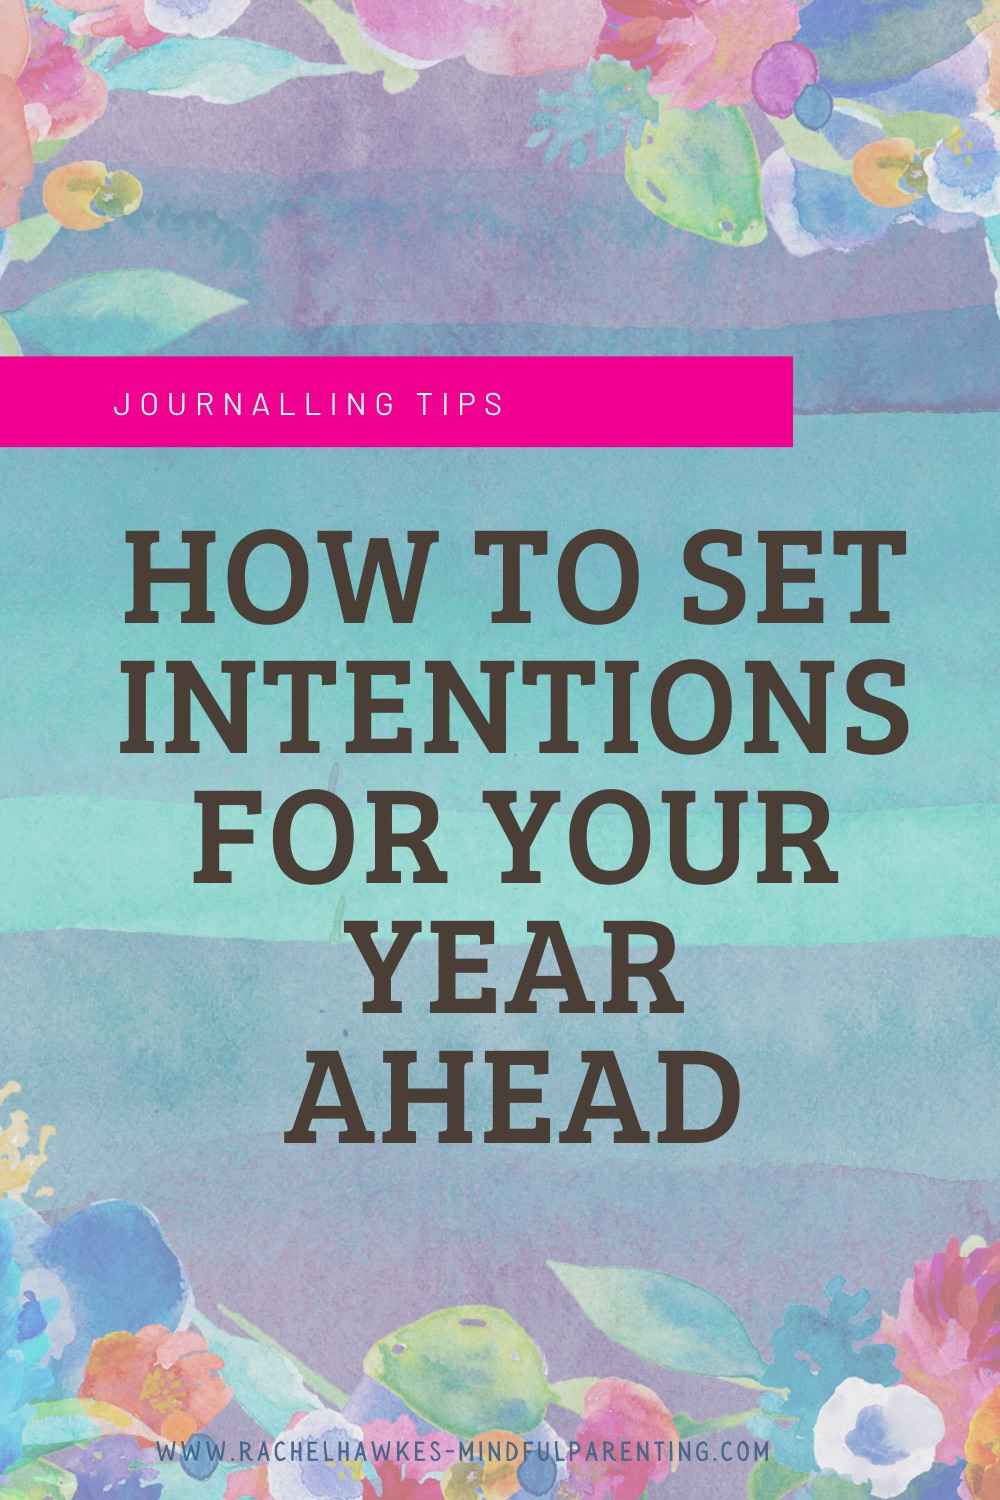 Intentions for the year